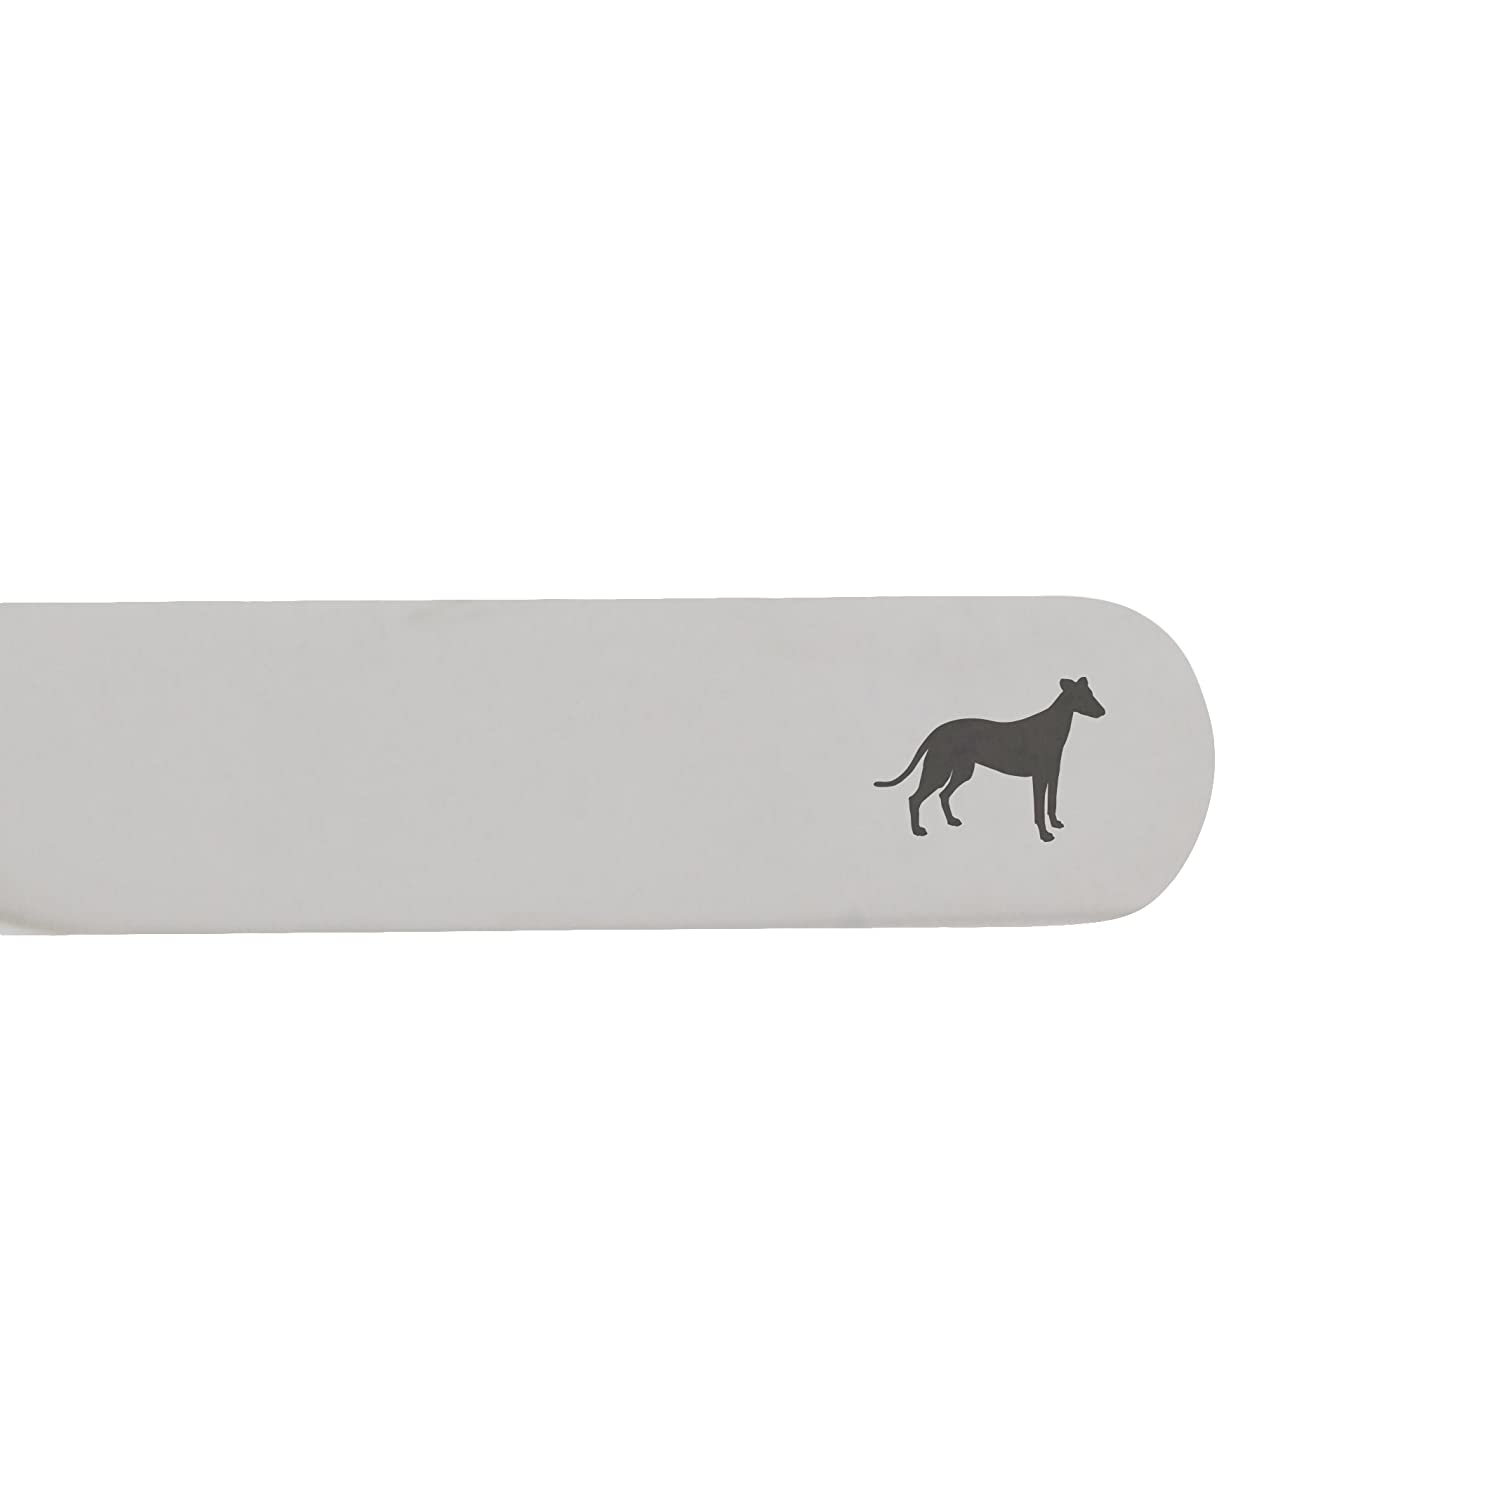 Made In USA 2.5 Inch Metal Collar Stiffeners MODERN GOODS SHOP Stainless Steel Collar Stays With Laser Engraved Whippet Design